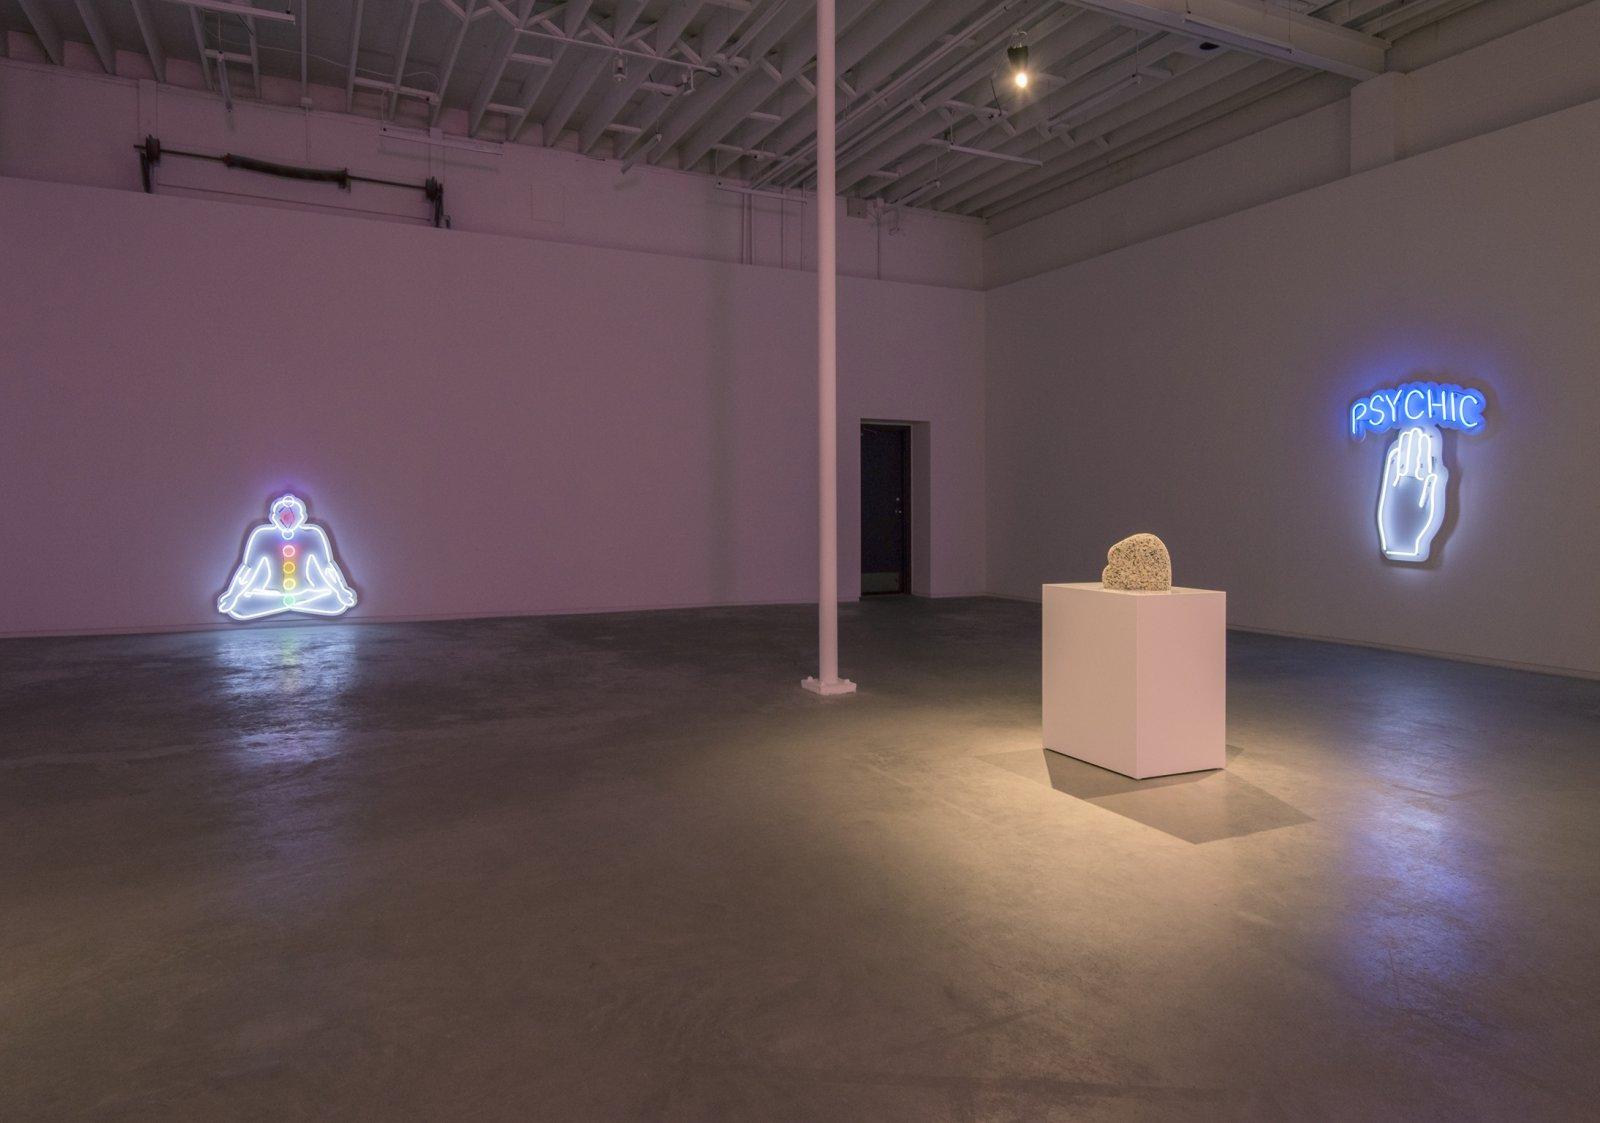 Myfanwy MacLeod, installation view, TELL HER NOTHING SHE TELLS ALL, Catriona Jeffries, 2017 by Myfanwy MacLeod